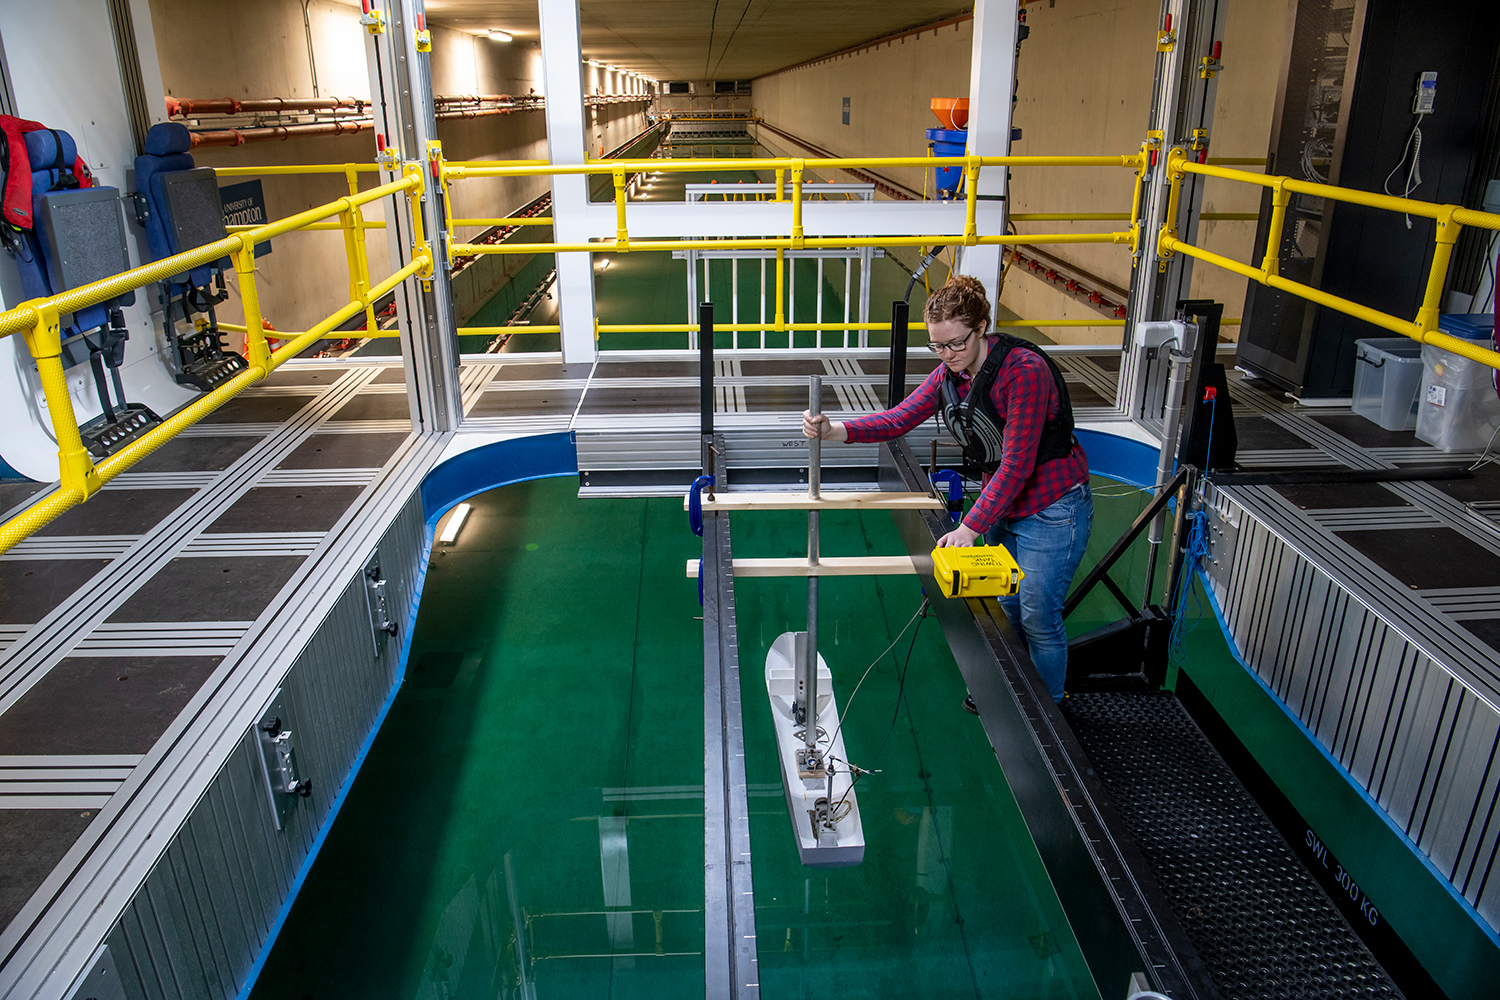 The University of Southampton's 138m towing tank is frequently used by undergraduate ship science students to explore hydrodynamics. (Image: © University of Southampton)